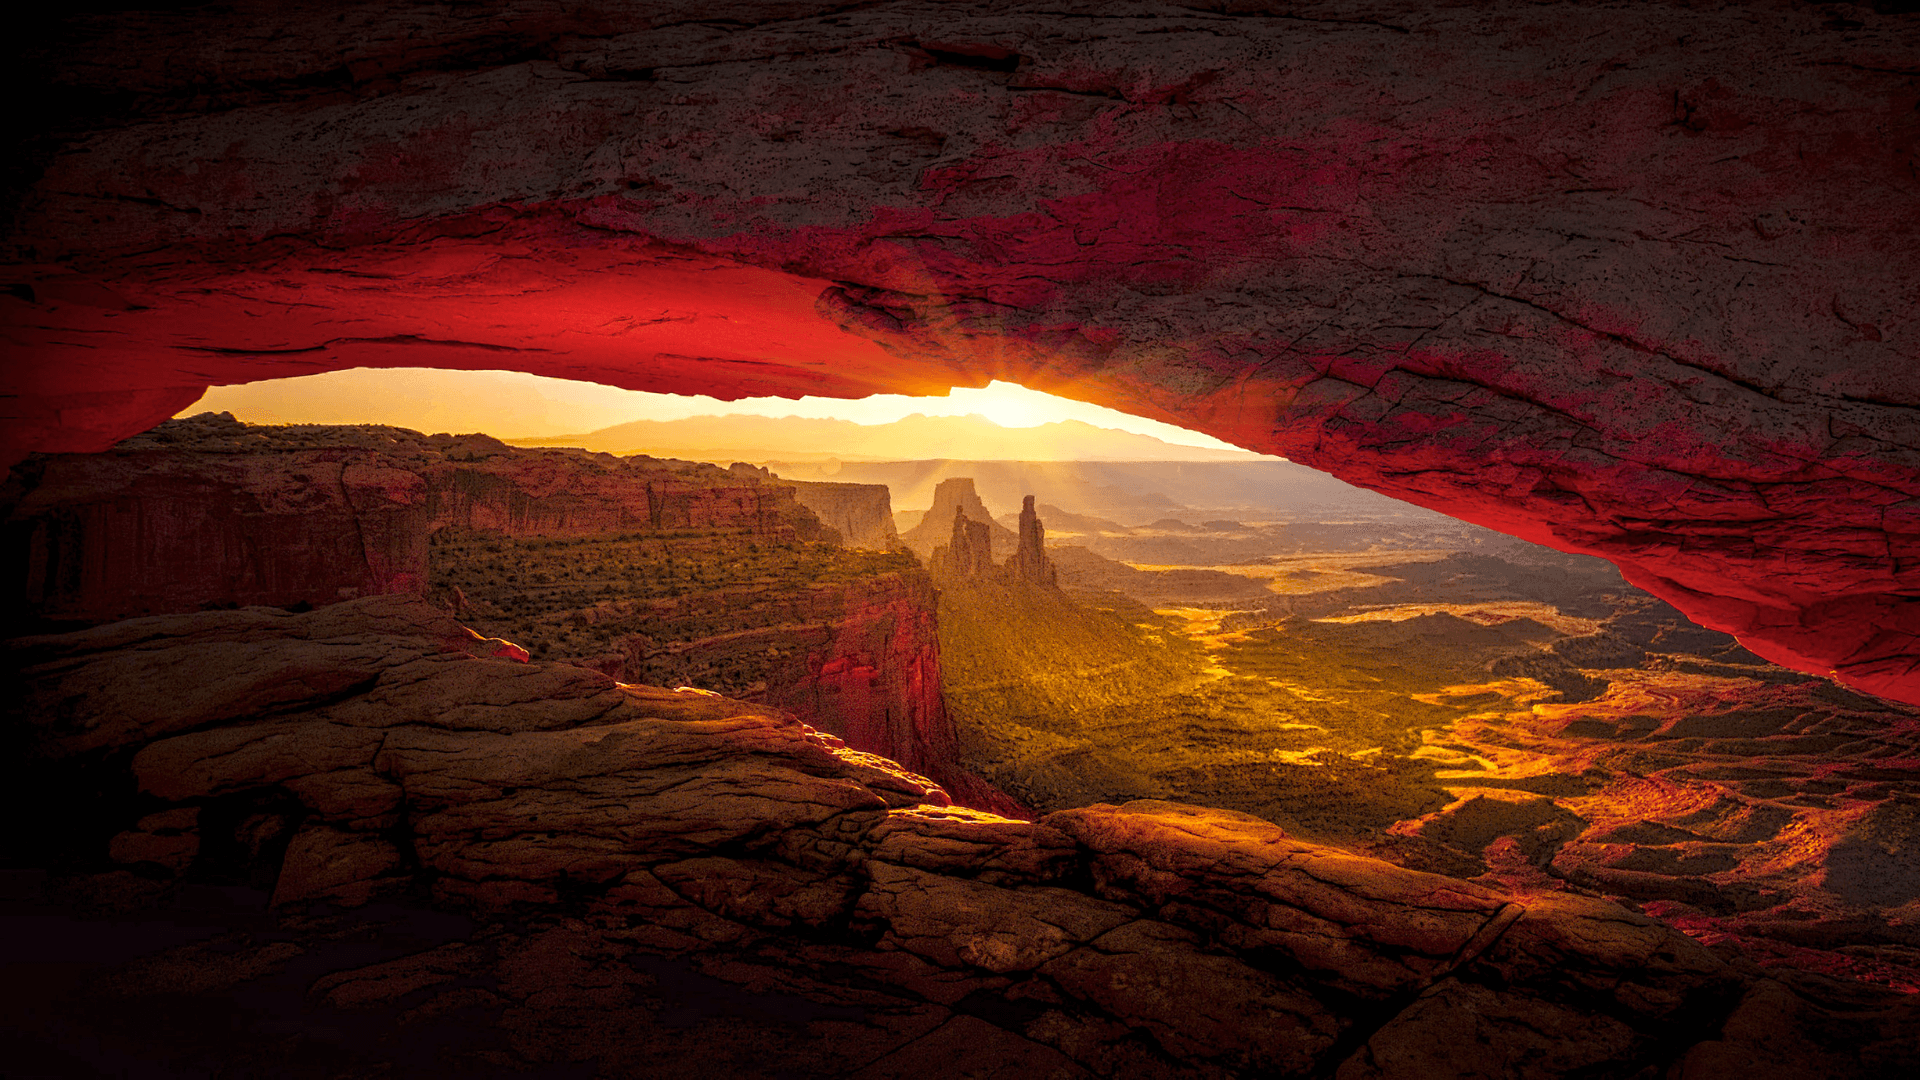 desert sunset with red rock arch